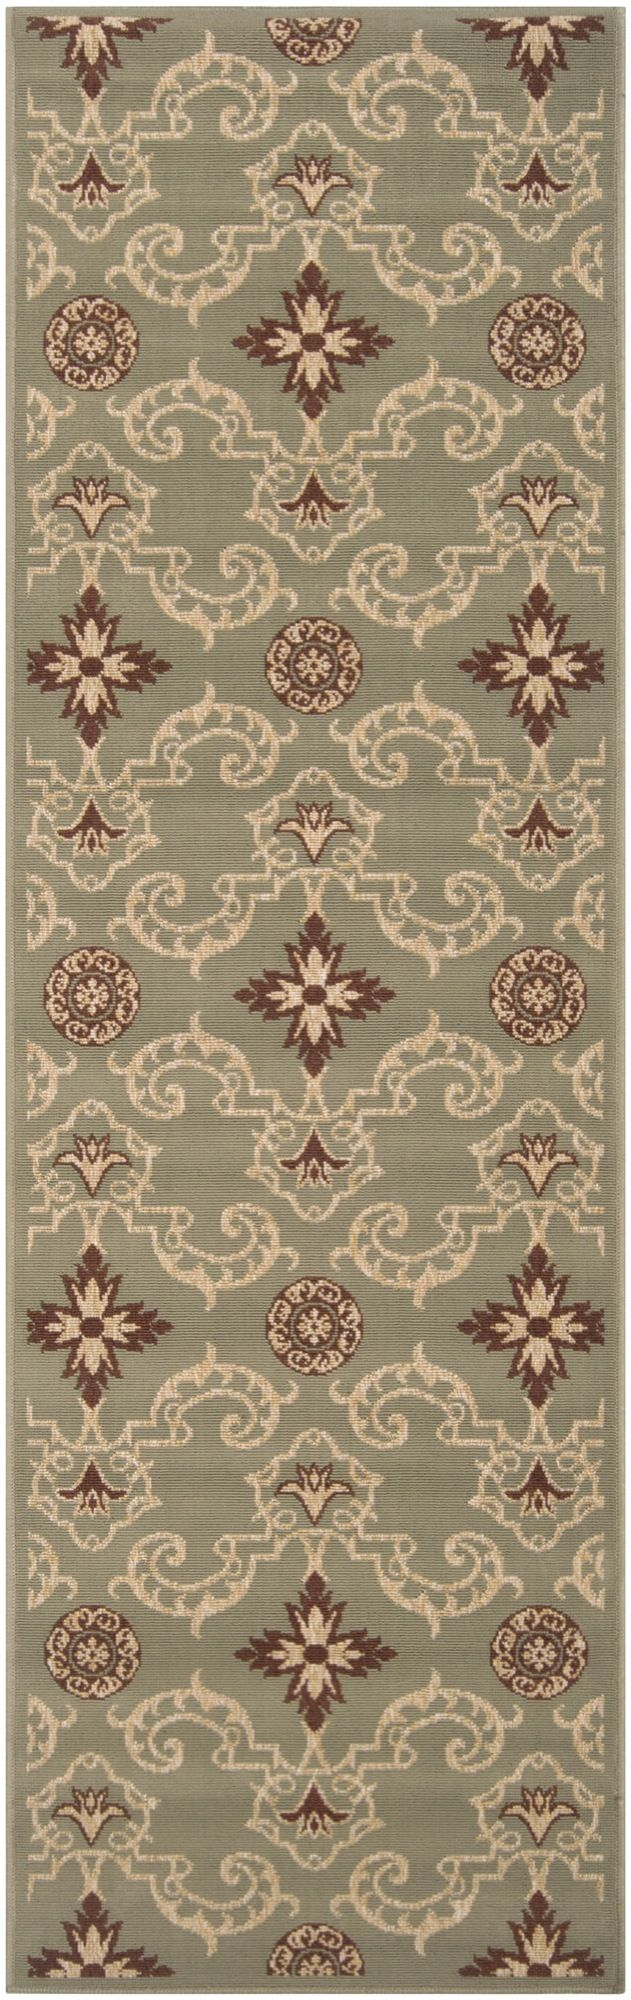 surya alfresco indoor/outdoor area rug collection